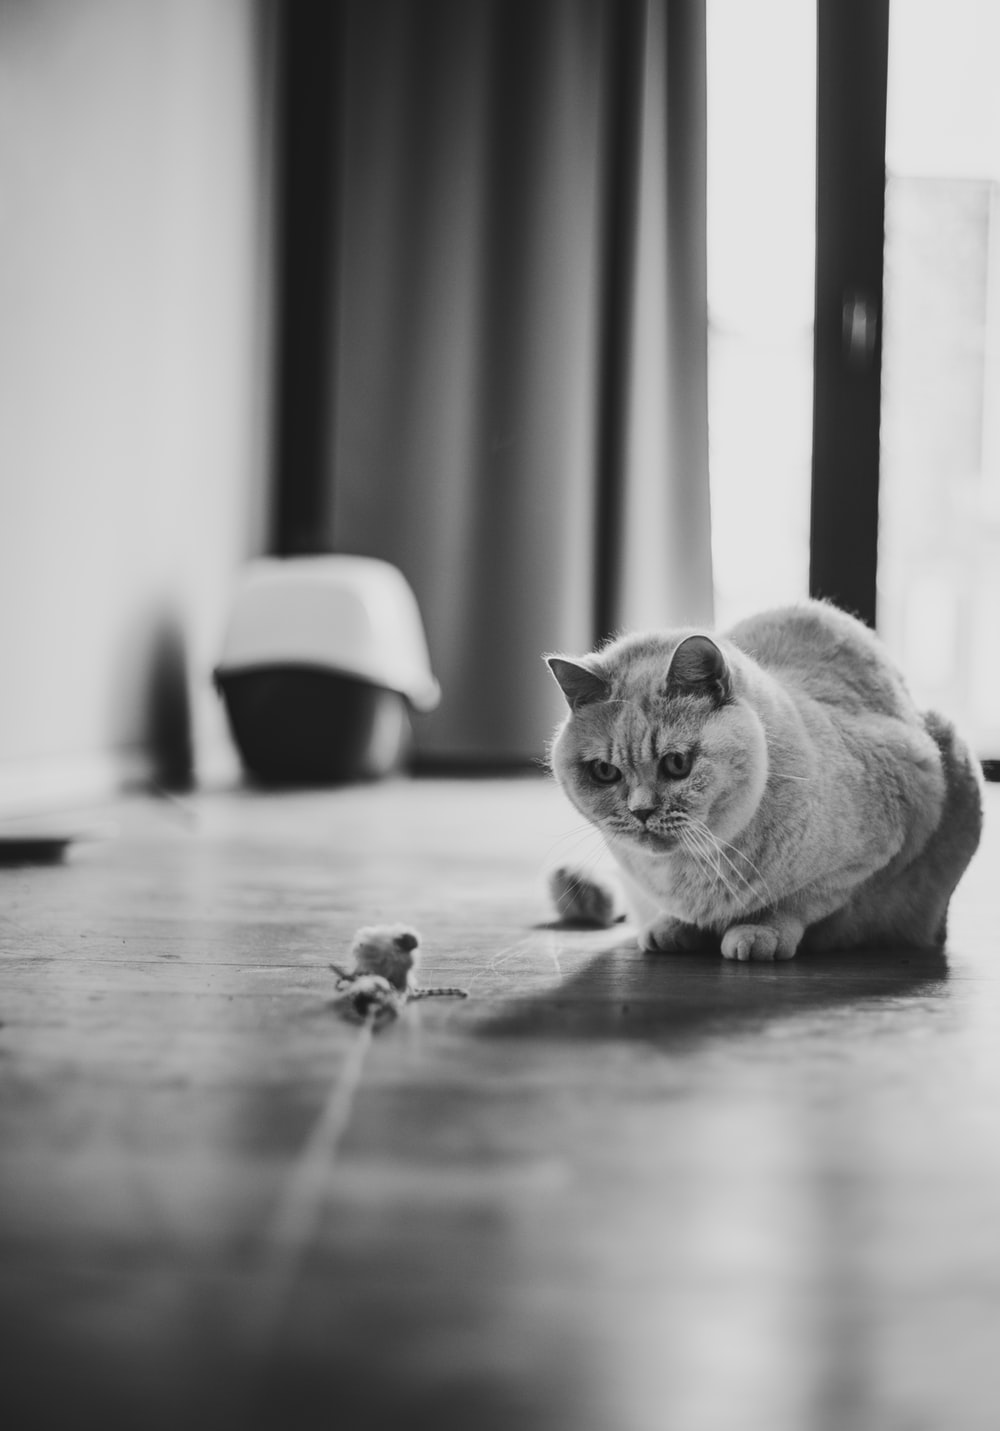 grayscale photography of cat inside room